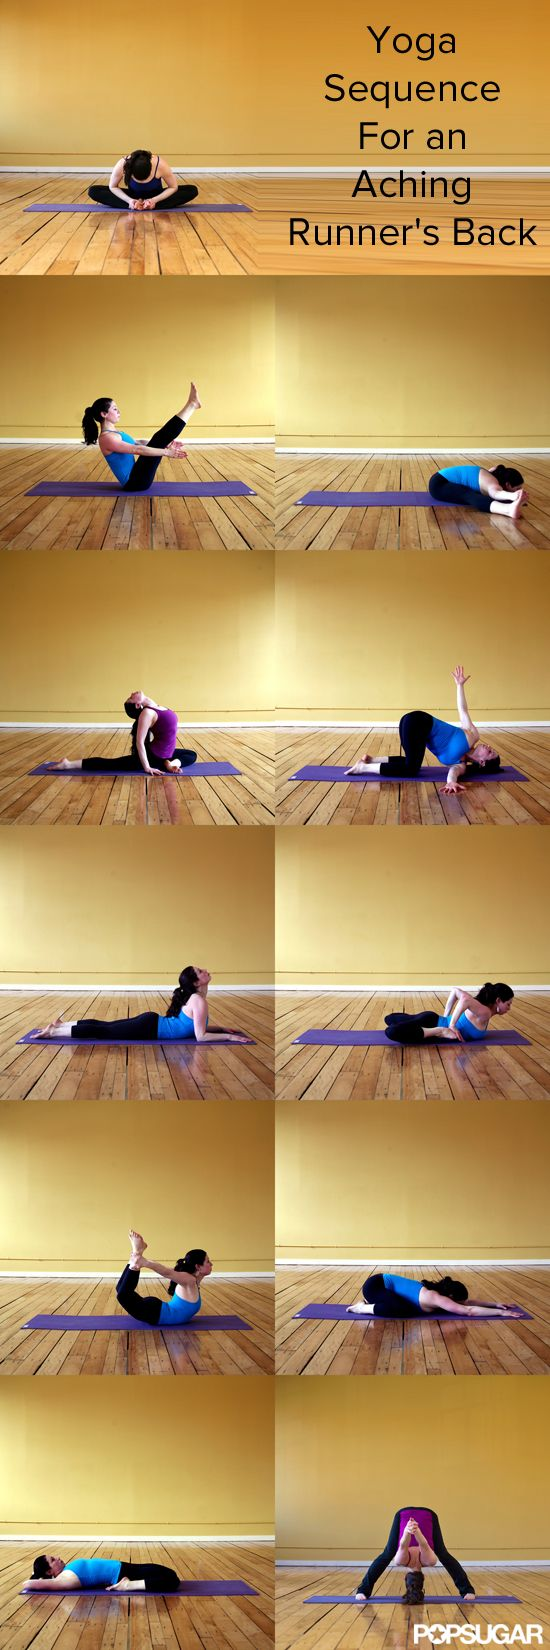 Yoga Sequence For an Aching Runnerus Back  Yoga sequences Tight